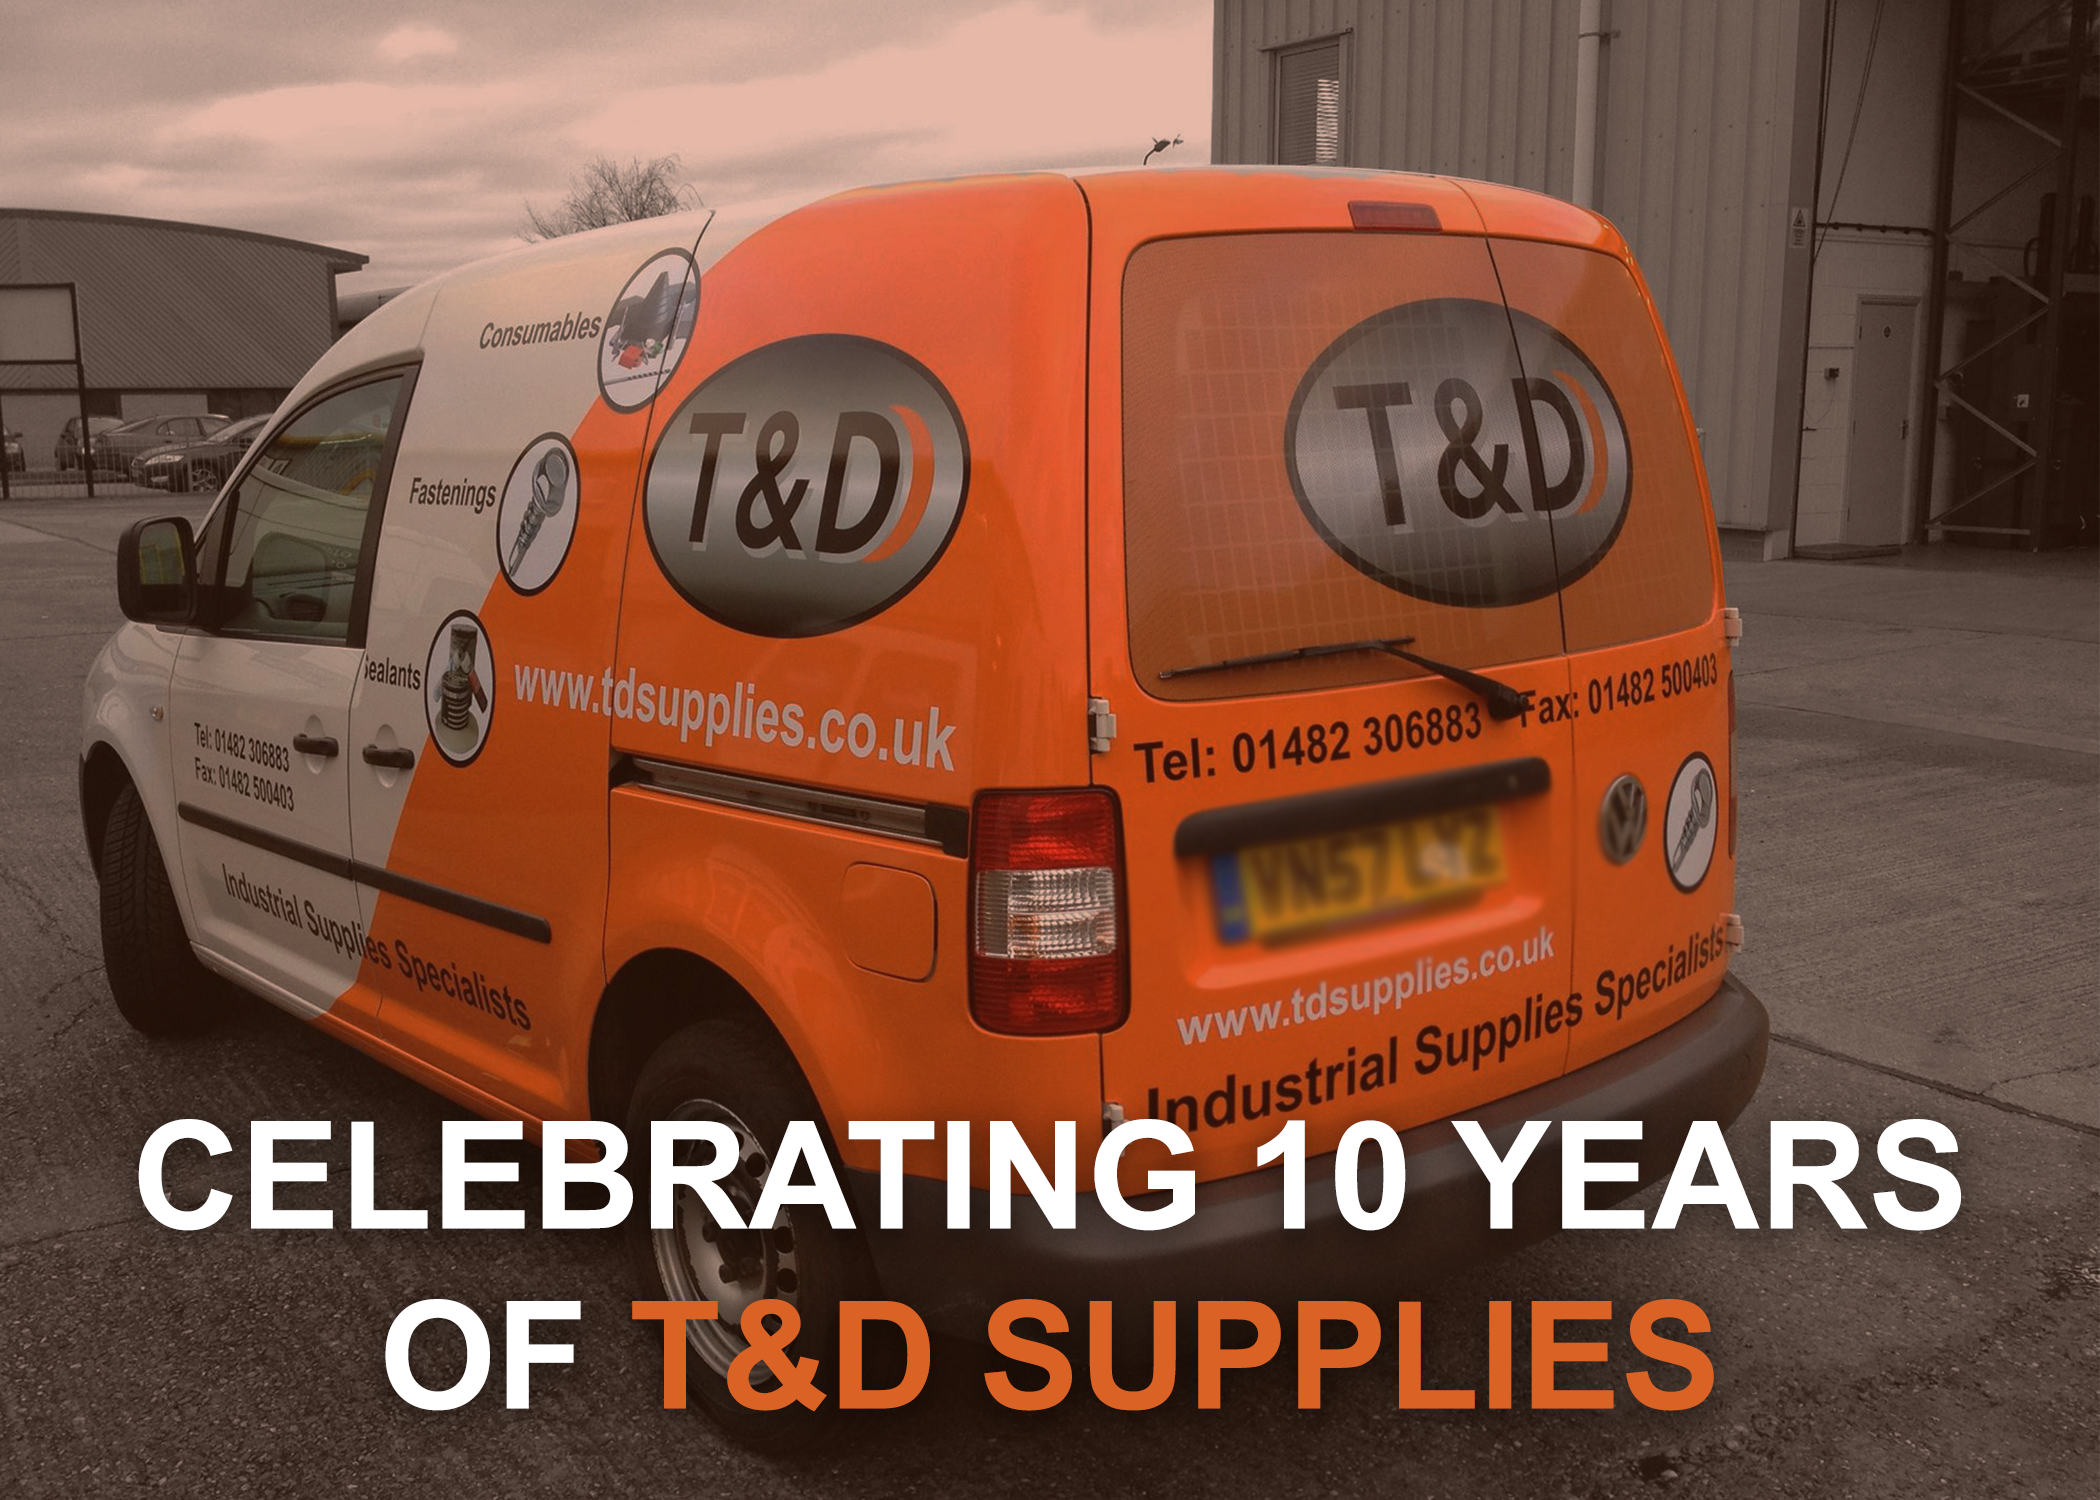 Celebrating 10 Years of T&D